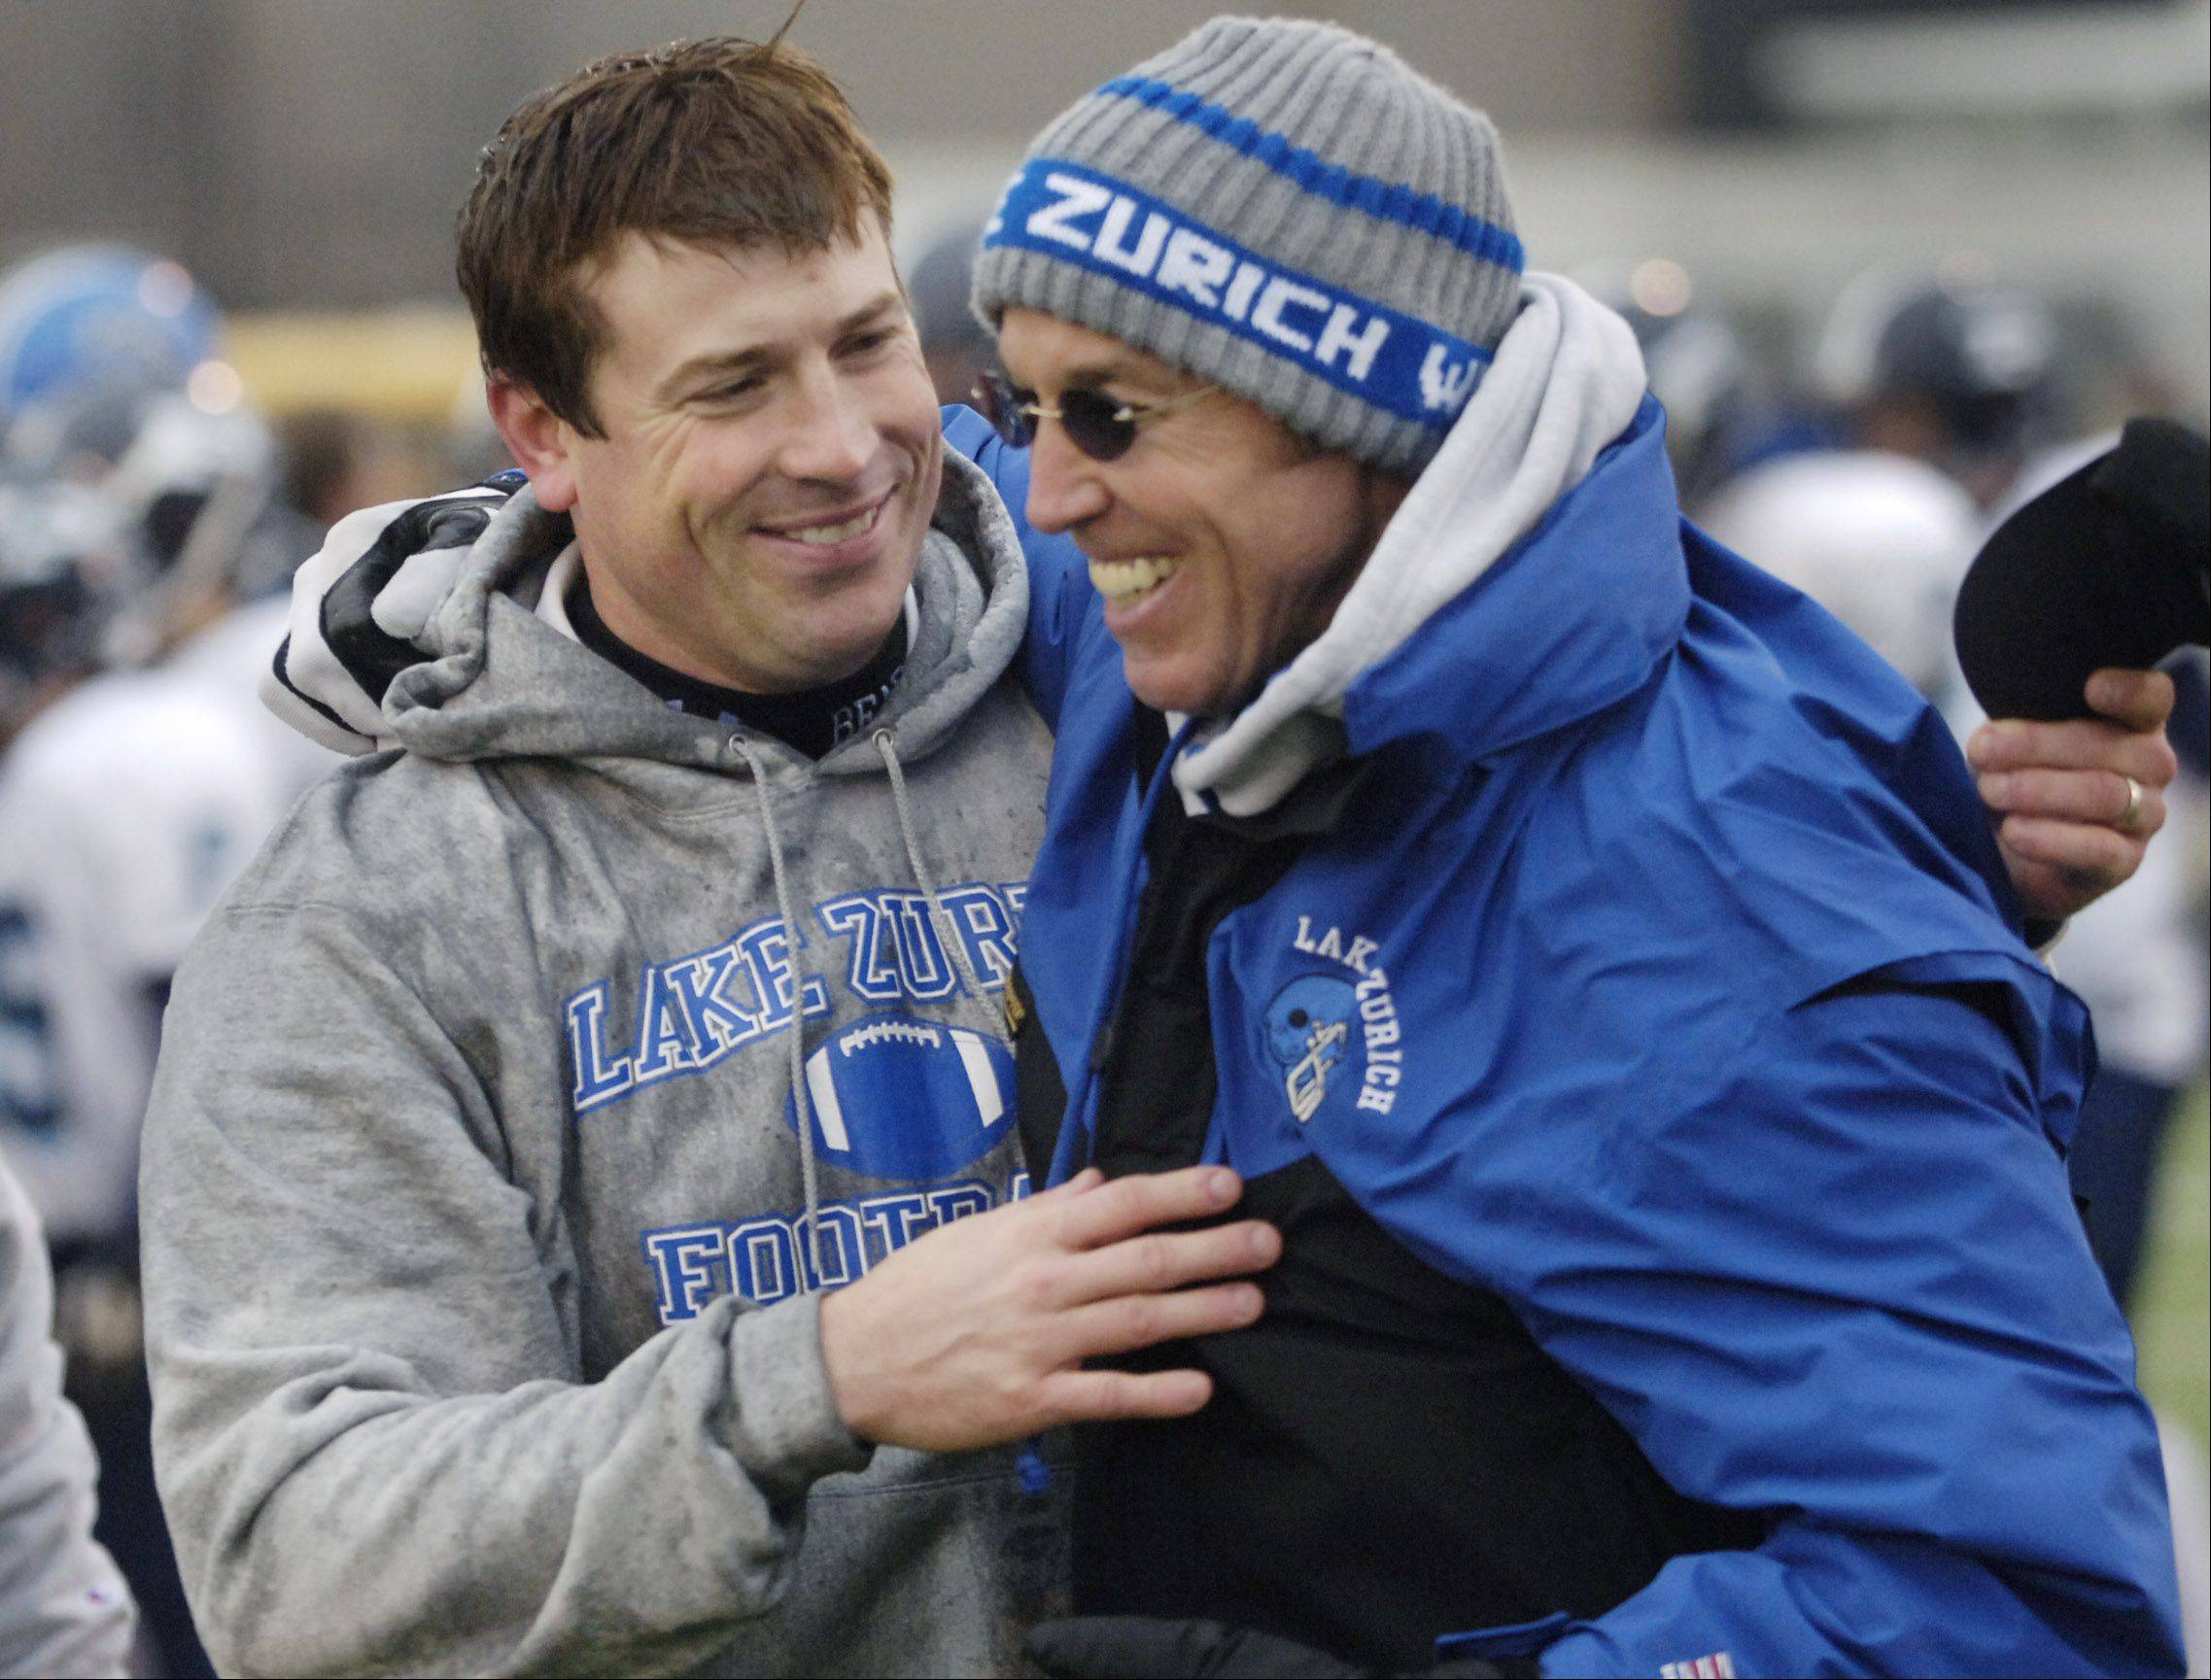 Bryan Stortz, left, is out, and Dave Proffitt is in as Lake Zurich's head coach.